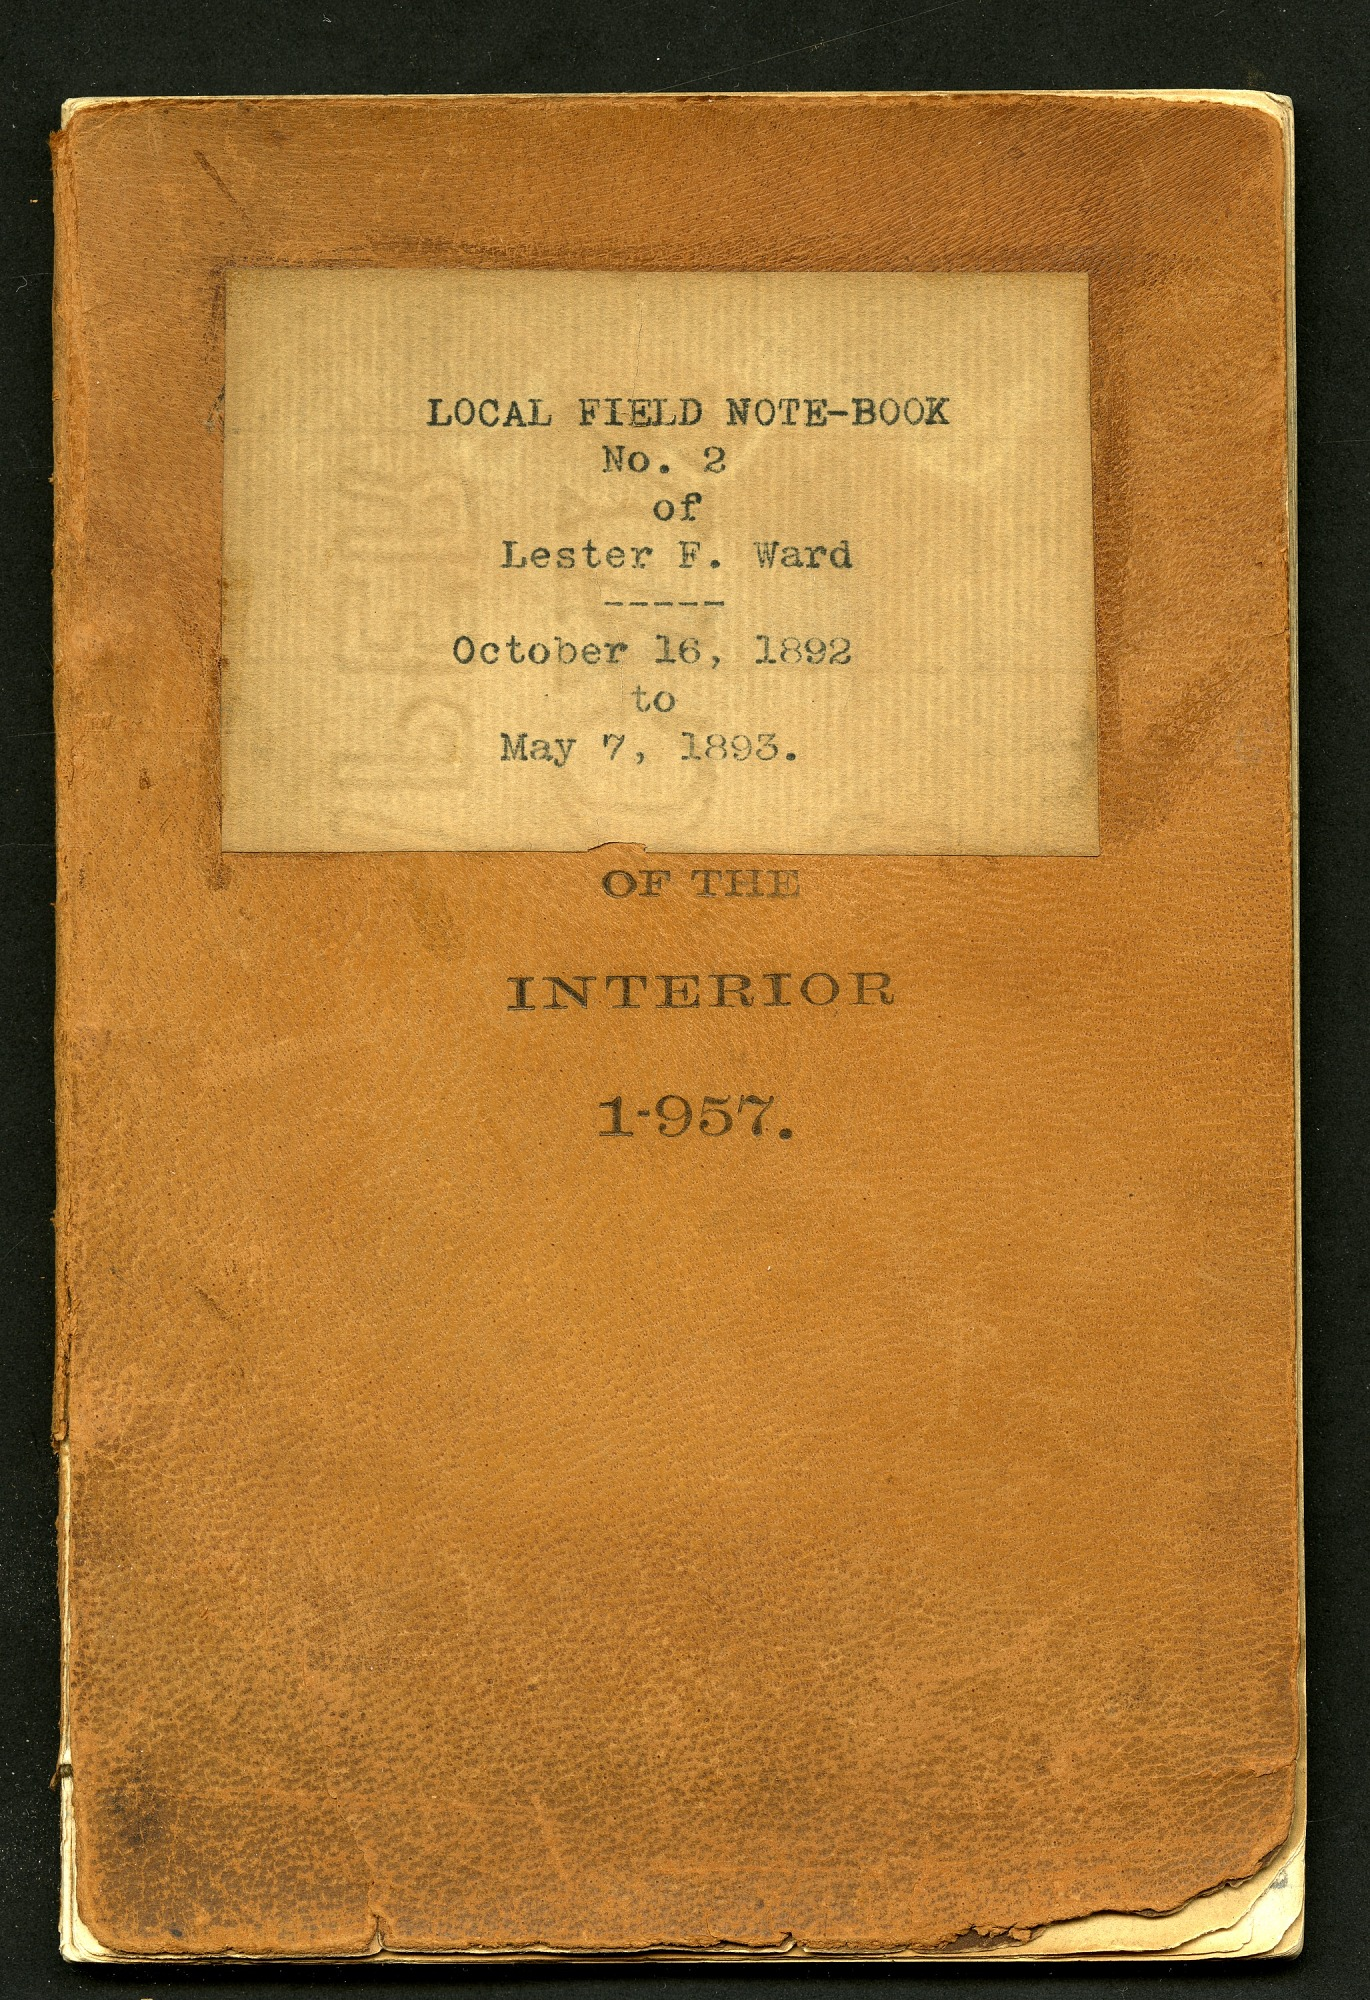 Local field note-book no. 2 of Lester F. Ward, October 16, 1892 to May 7, 1893